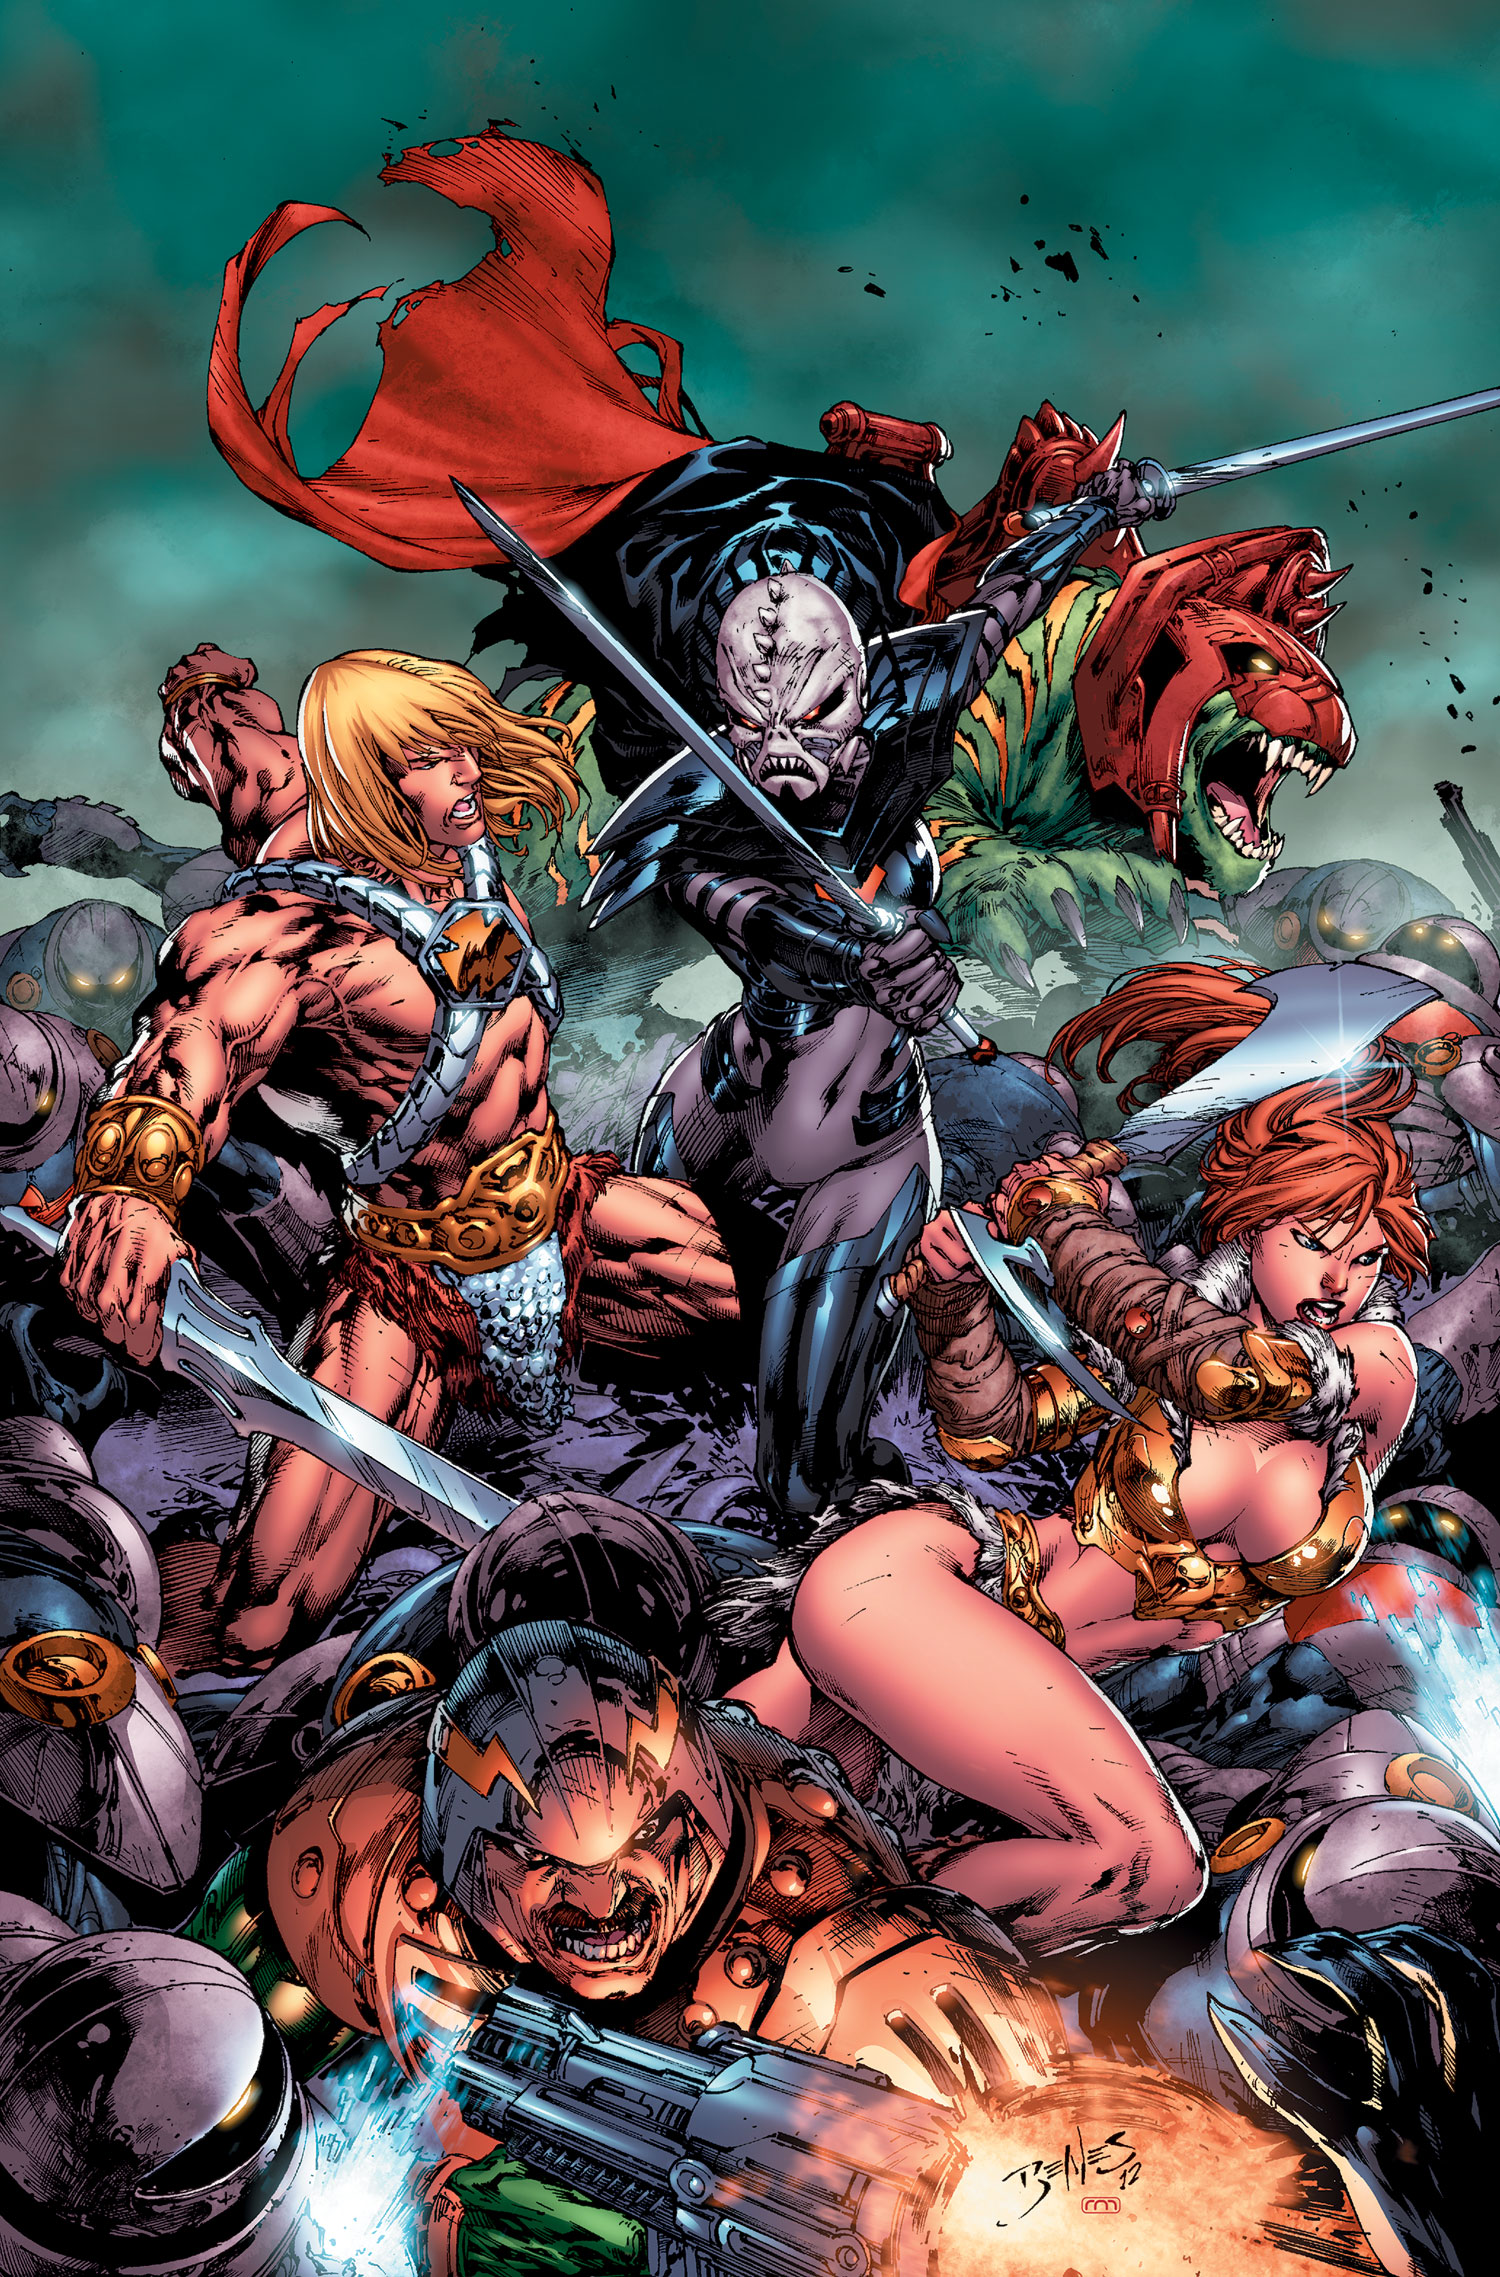 Poe Totally Missed This > He-Man and the Masters of the Universe Getting an Ongoing Comic